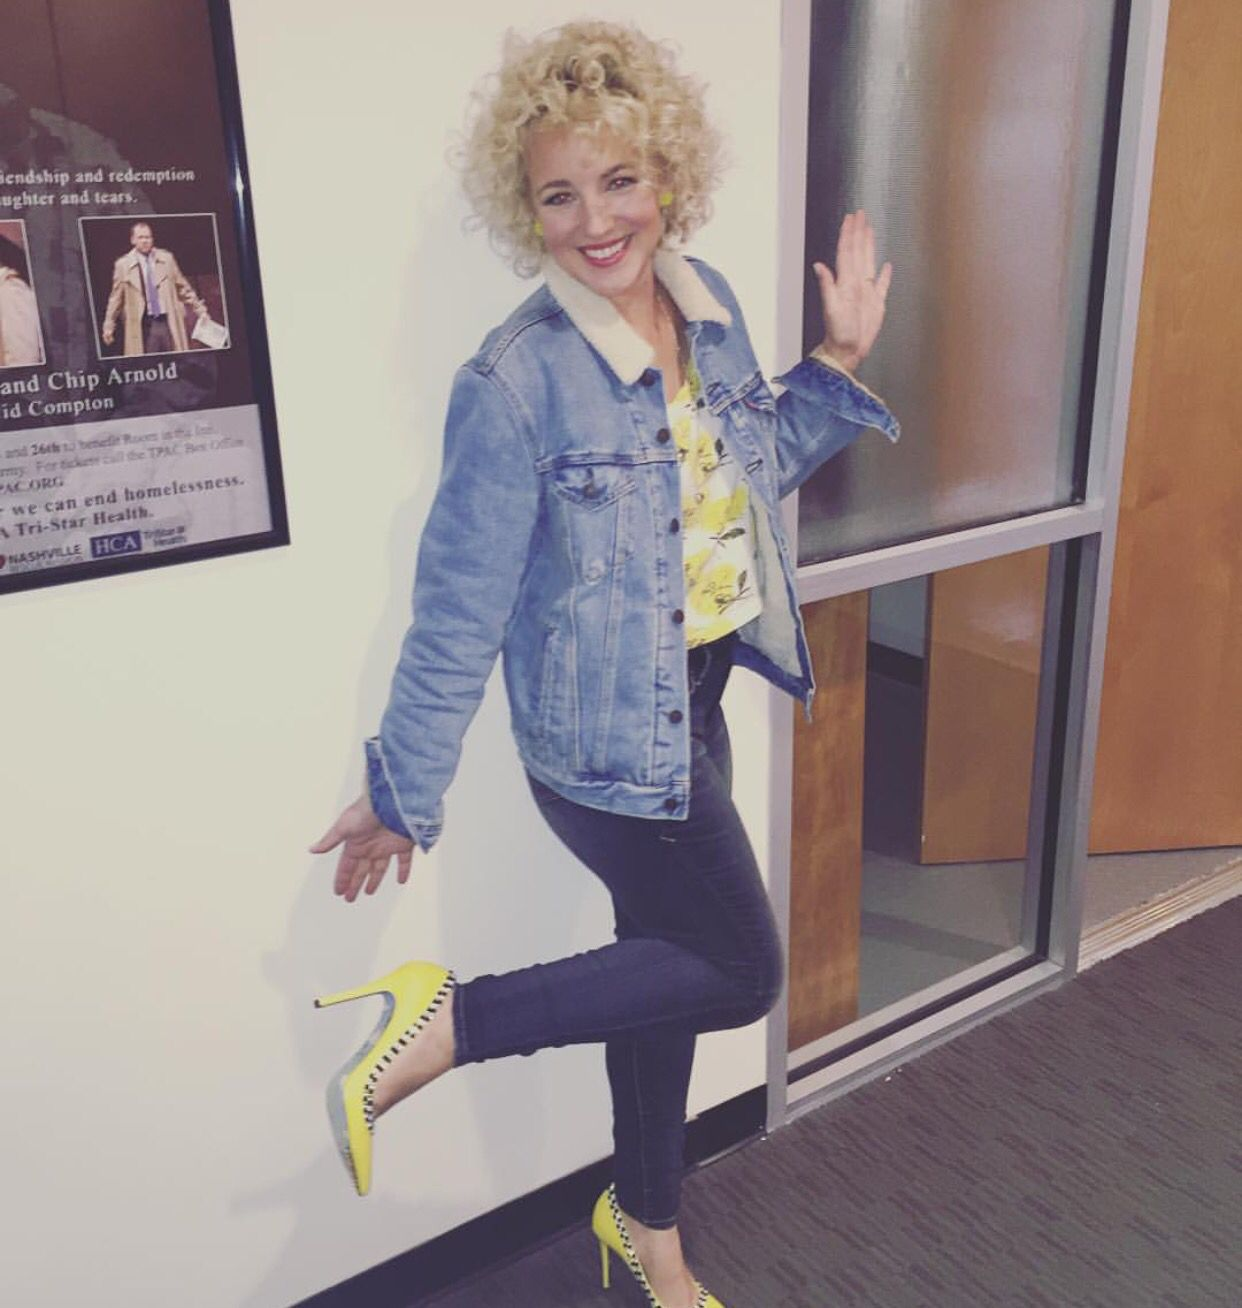 cc: @camcountry on Instagram